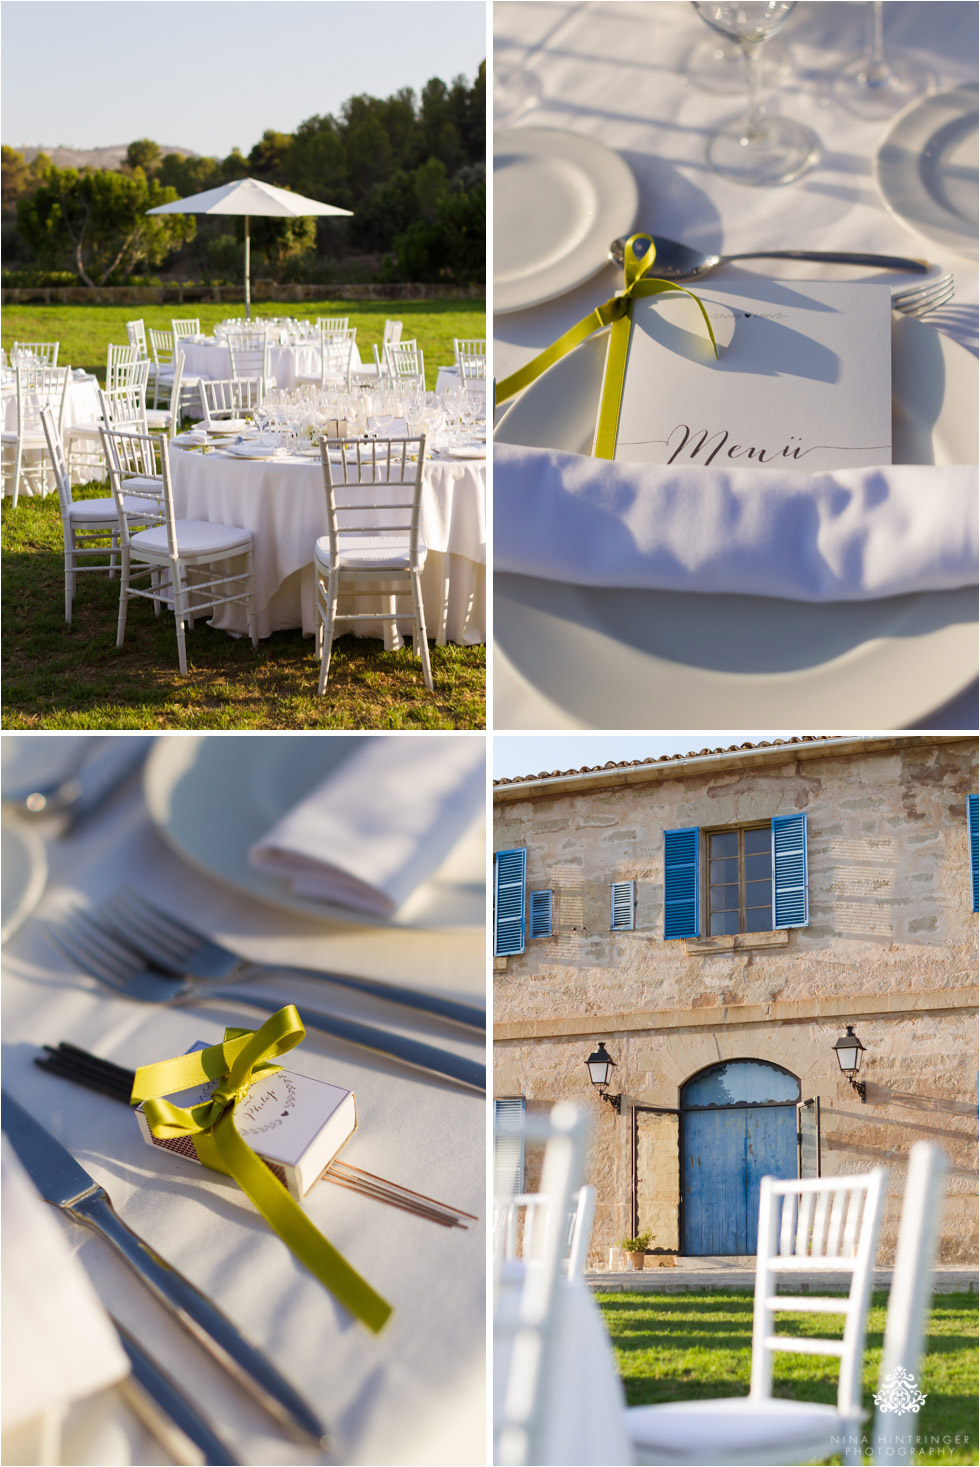 Private Finca Wedding in Camp de Mar, Majorca with Madeleine & Philip - Blog of Nina Hintringer Photography - Wedding Photography, Wedding Reportage and Destination Weddings